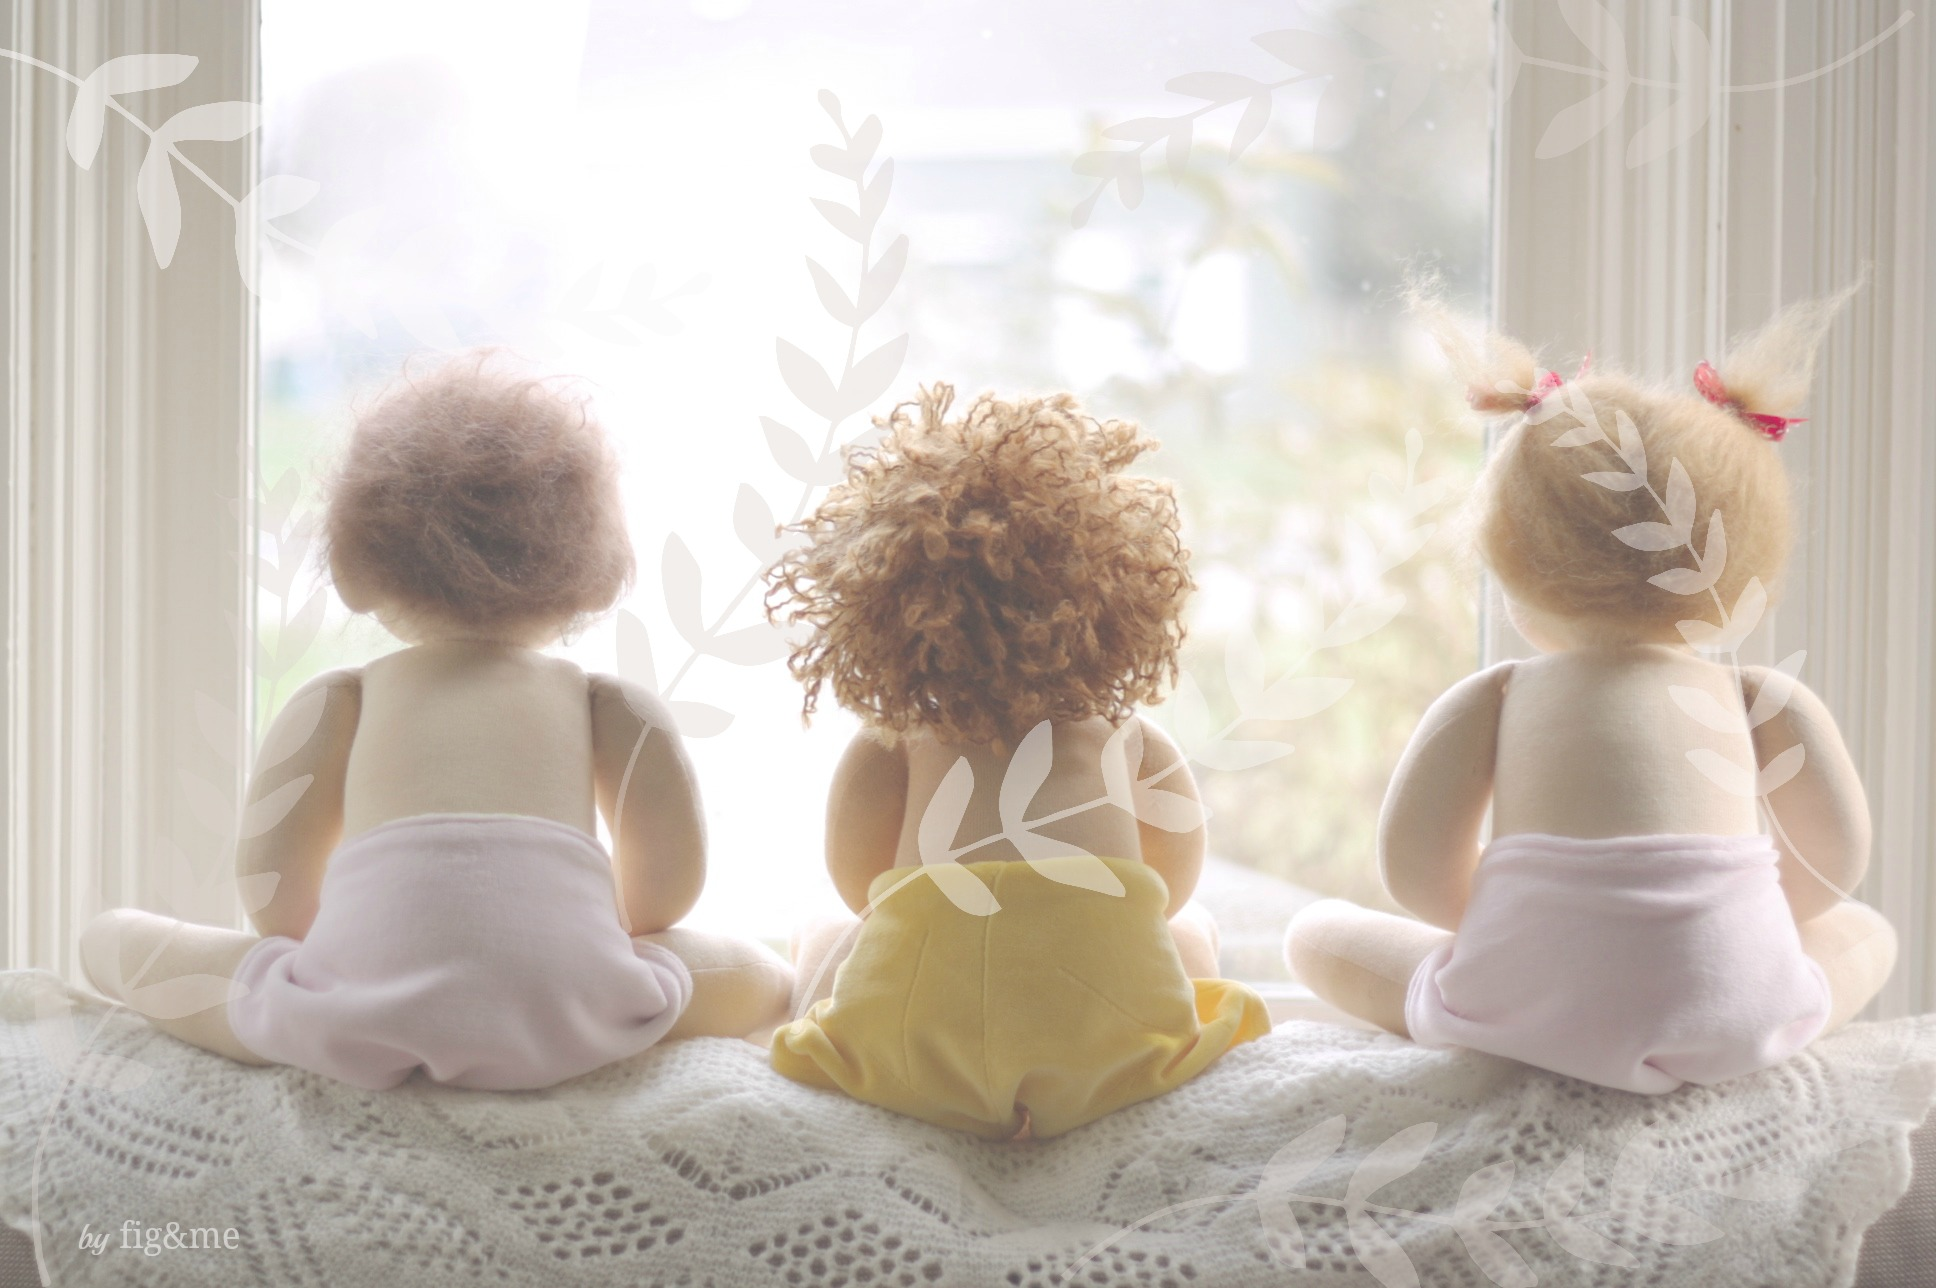 Three little babies, in their diapers. By Fig and me.